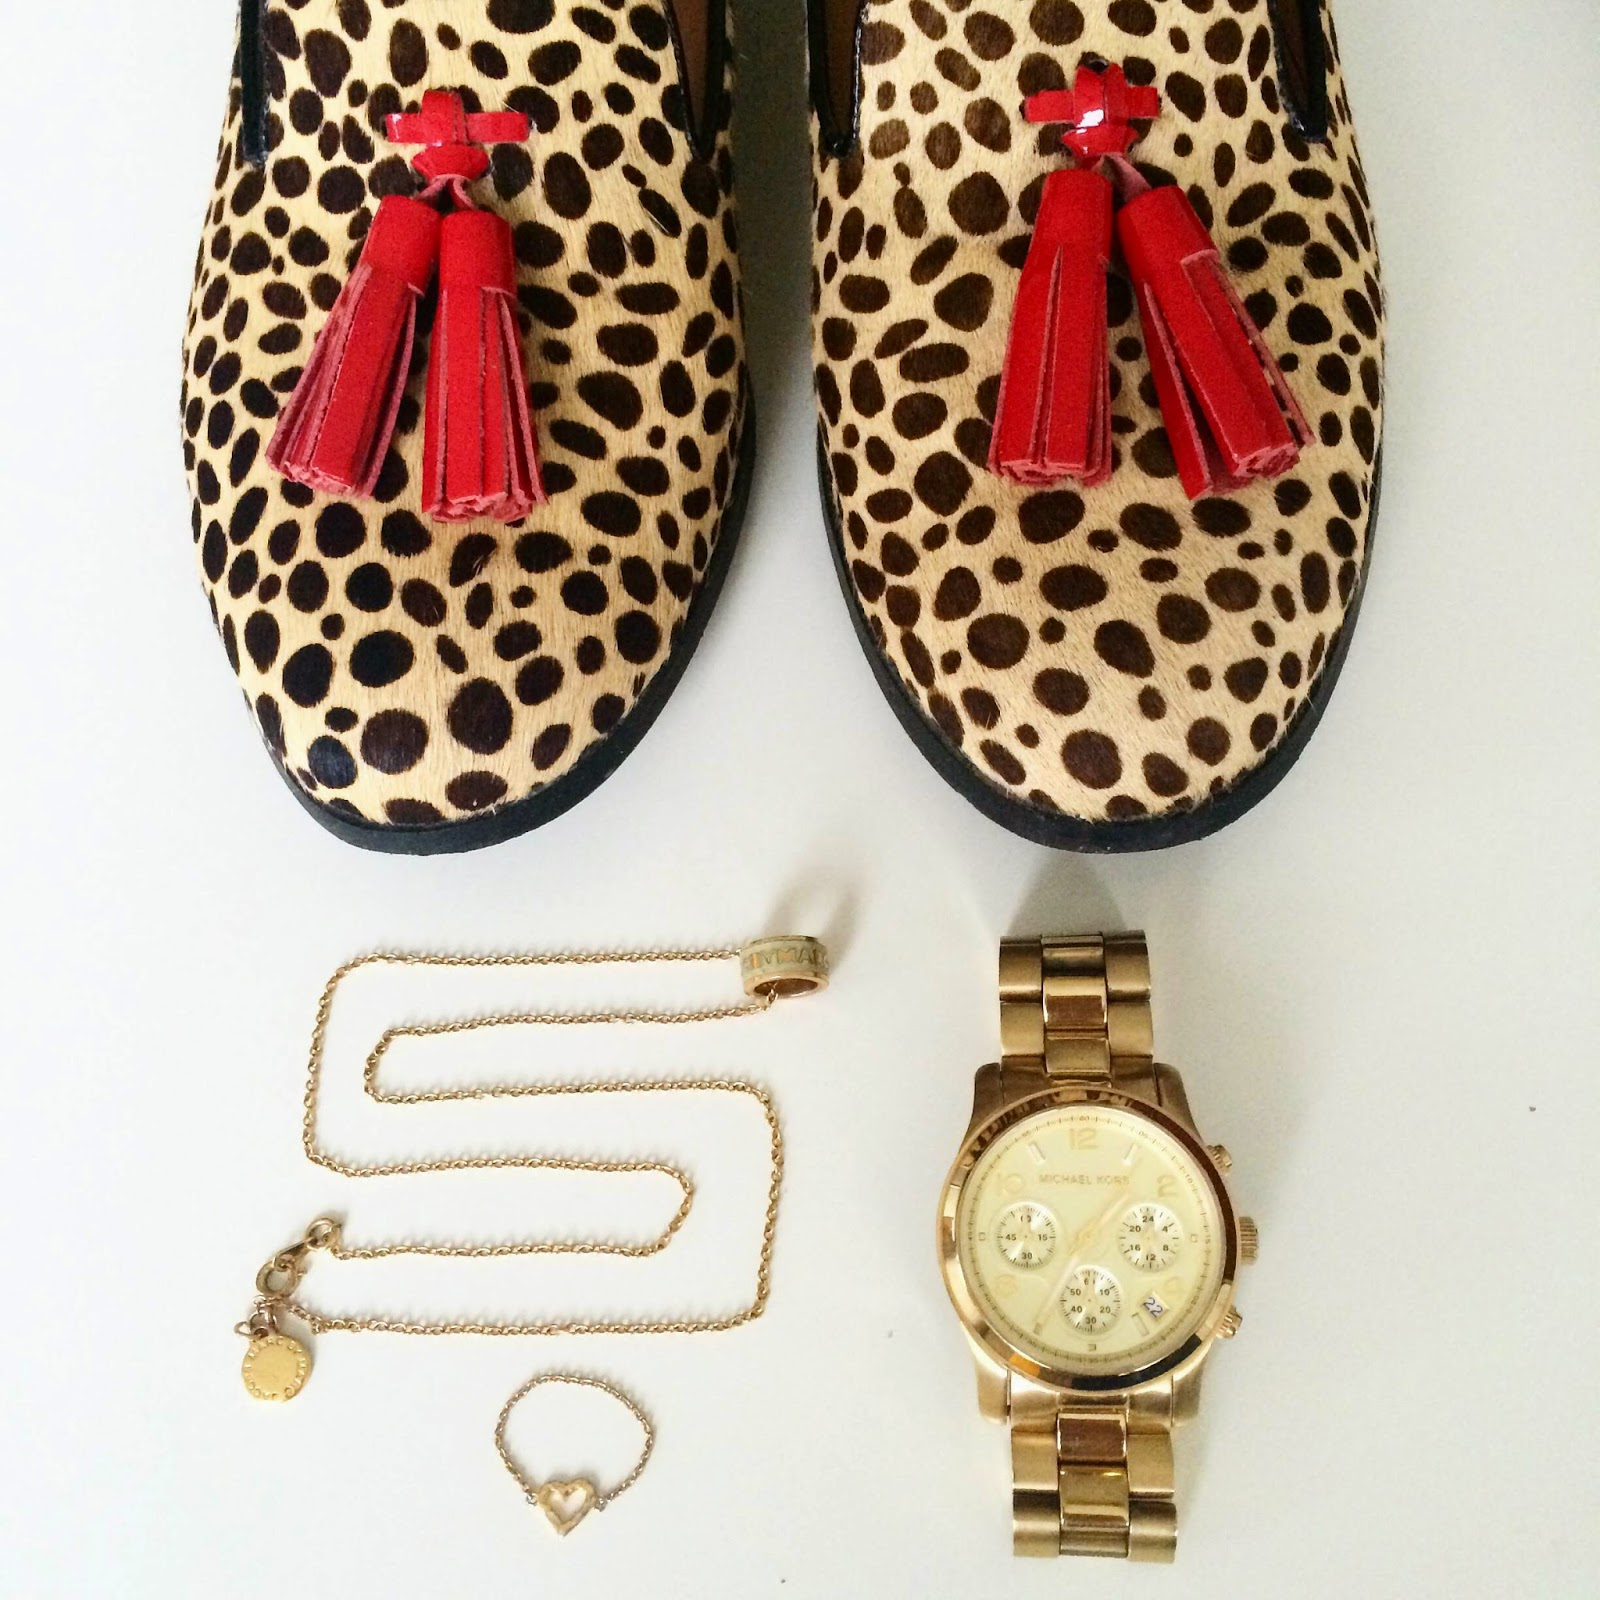 leopard fur loafers marc jacobs necklace gorjana heart ring michael kors watch